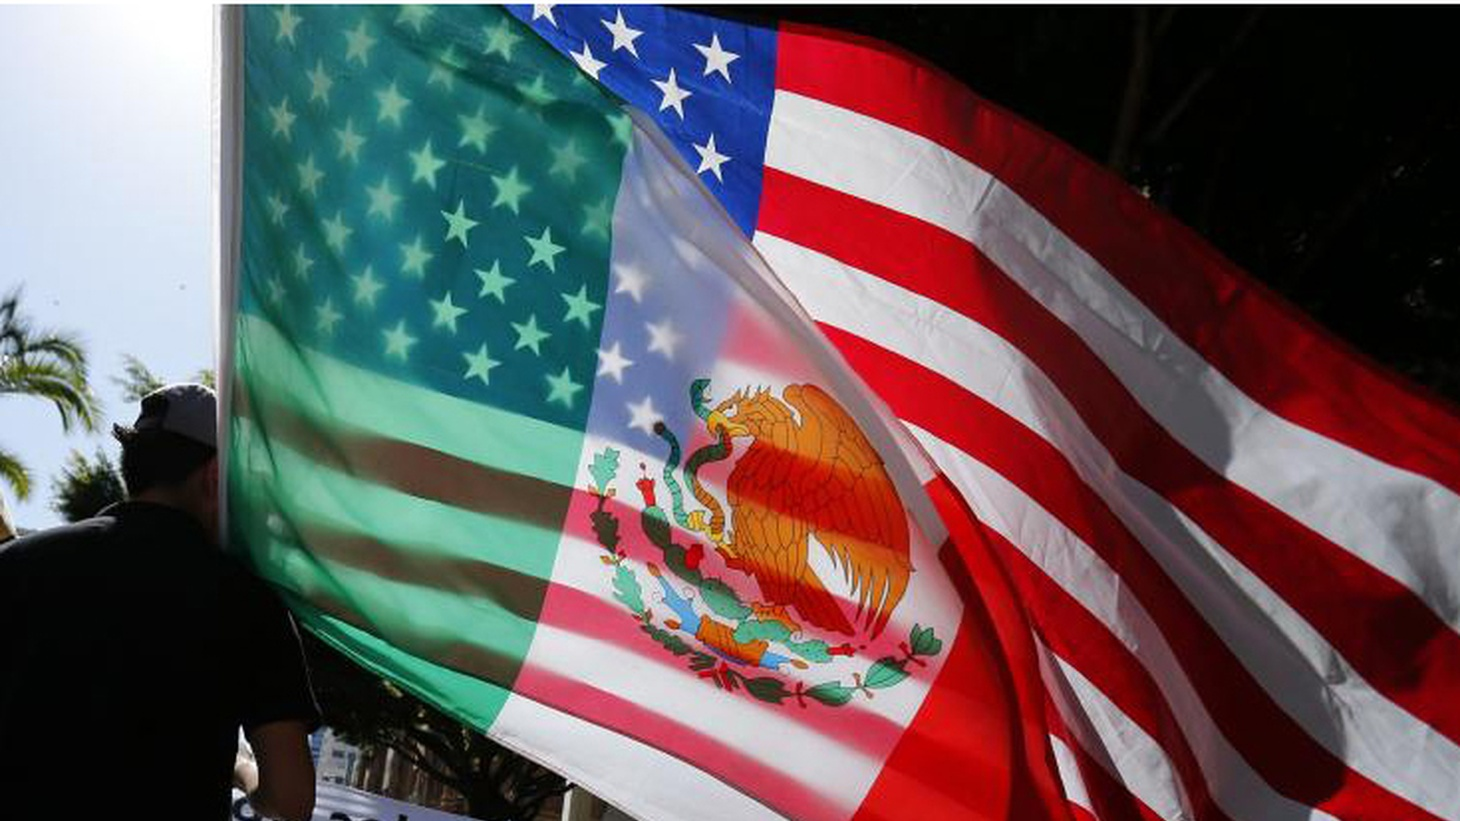 U.S. and Mexico flags at a U.S. immigration rally